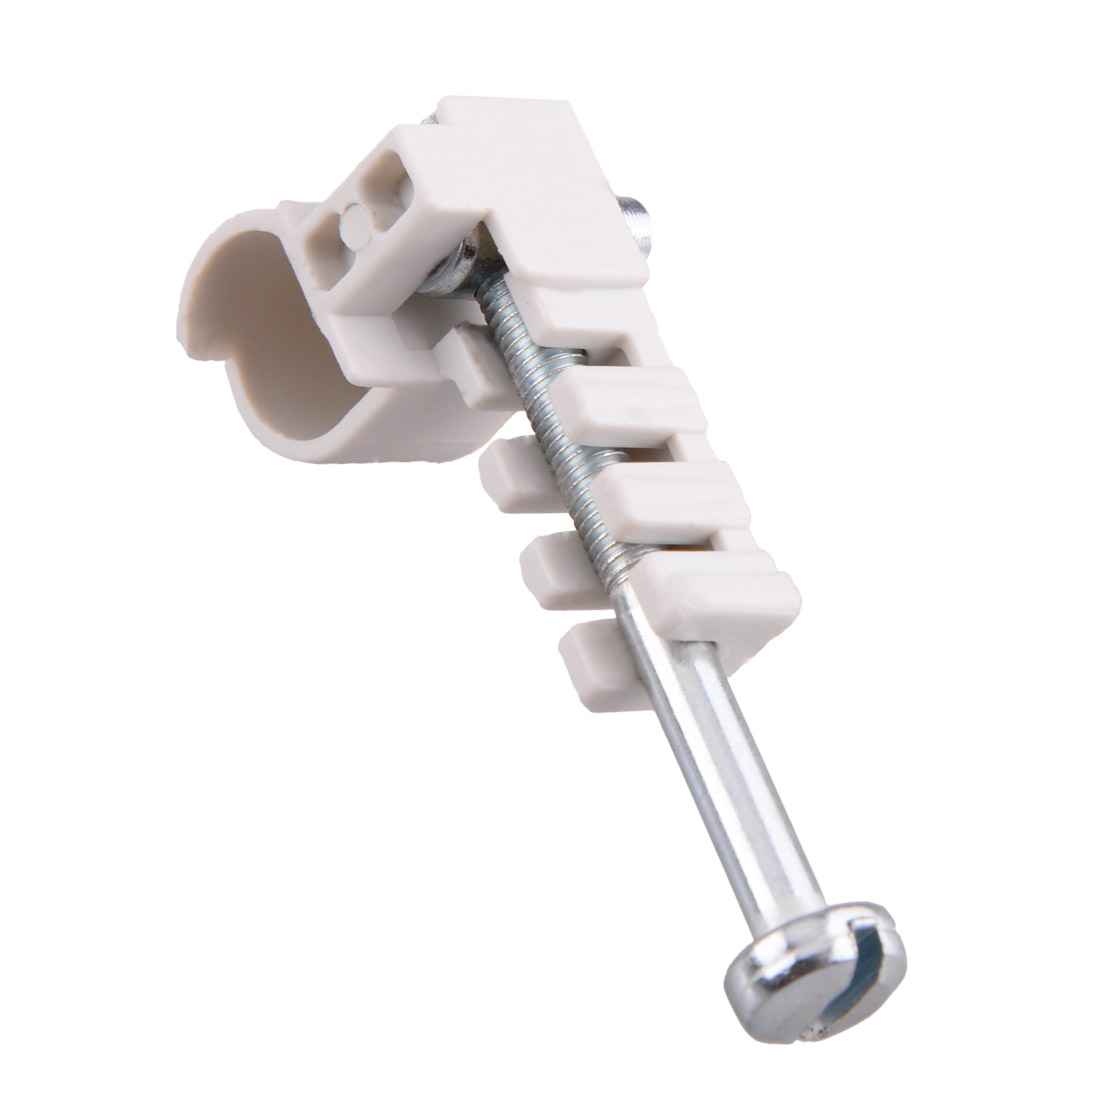 LETAOSK Chain Adjuster Screw Tensioner Assembly Fit For Stihl 017 018 MS170 MS180 Chainsaw 11236641605